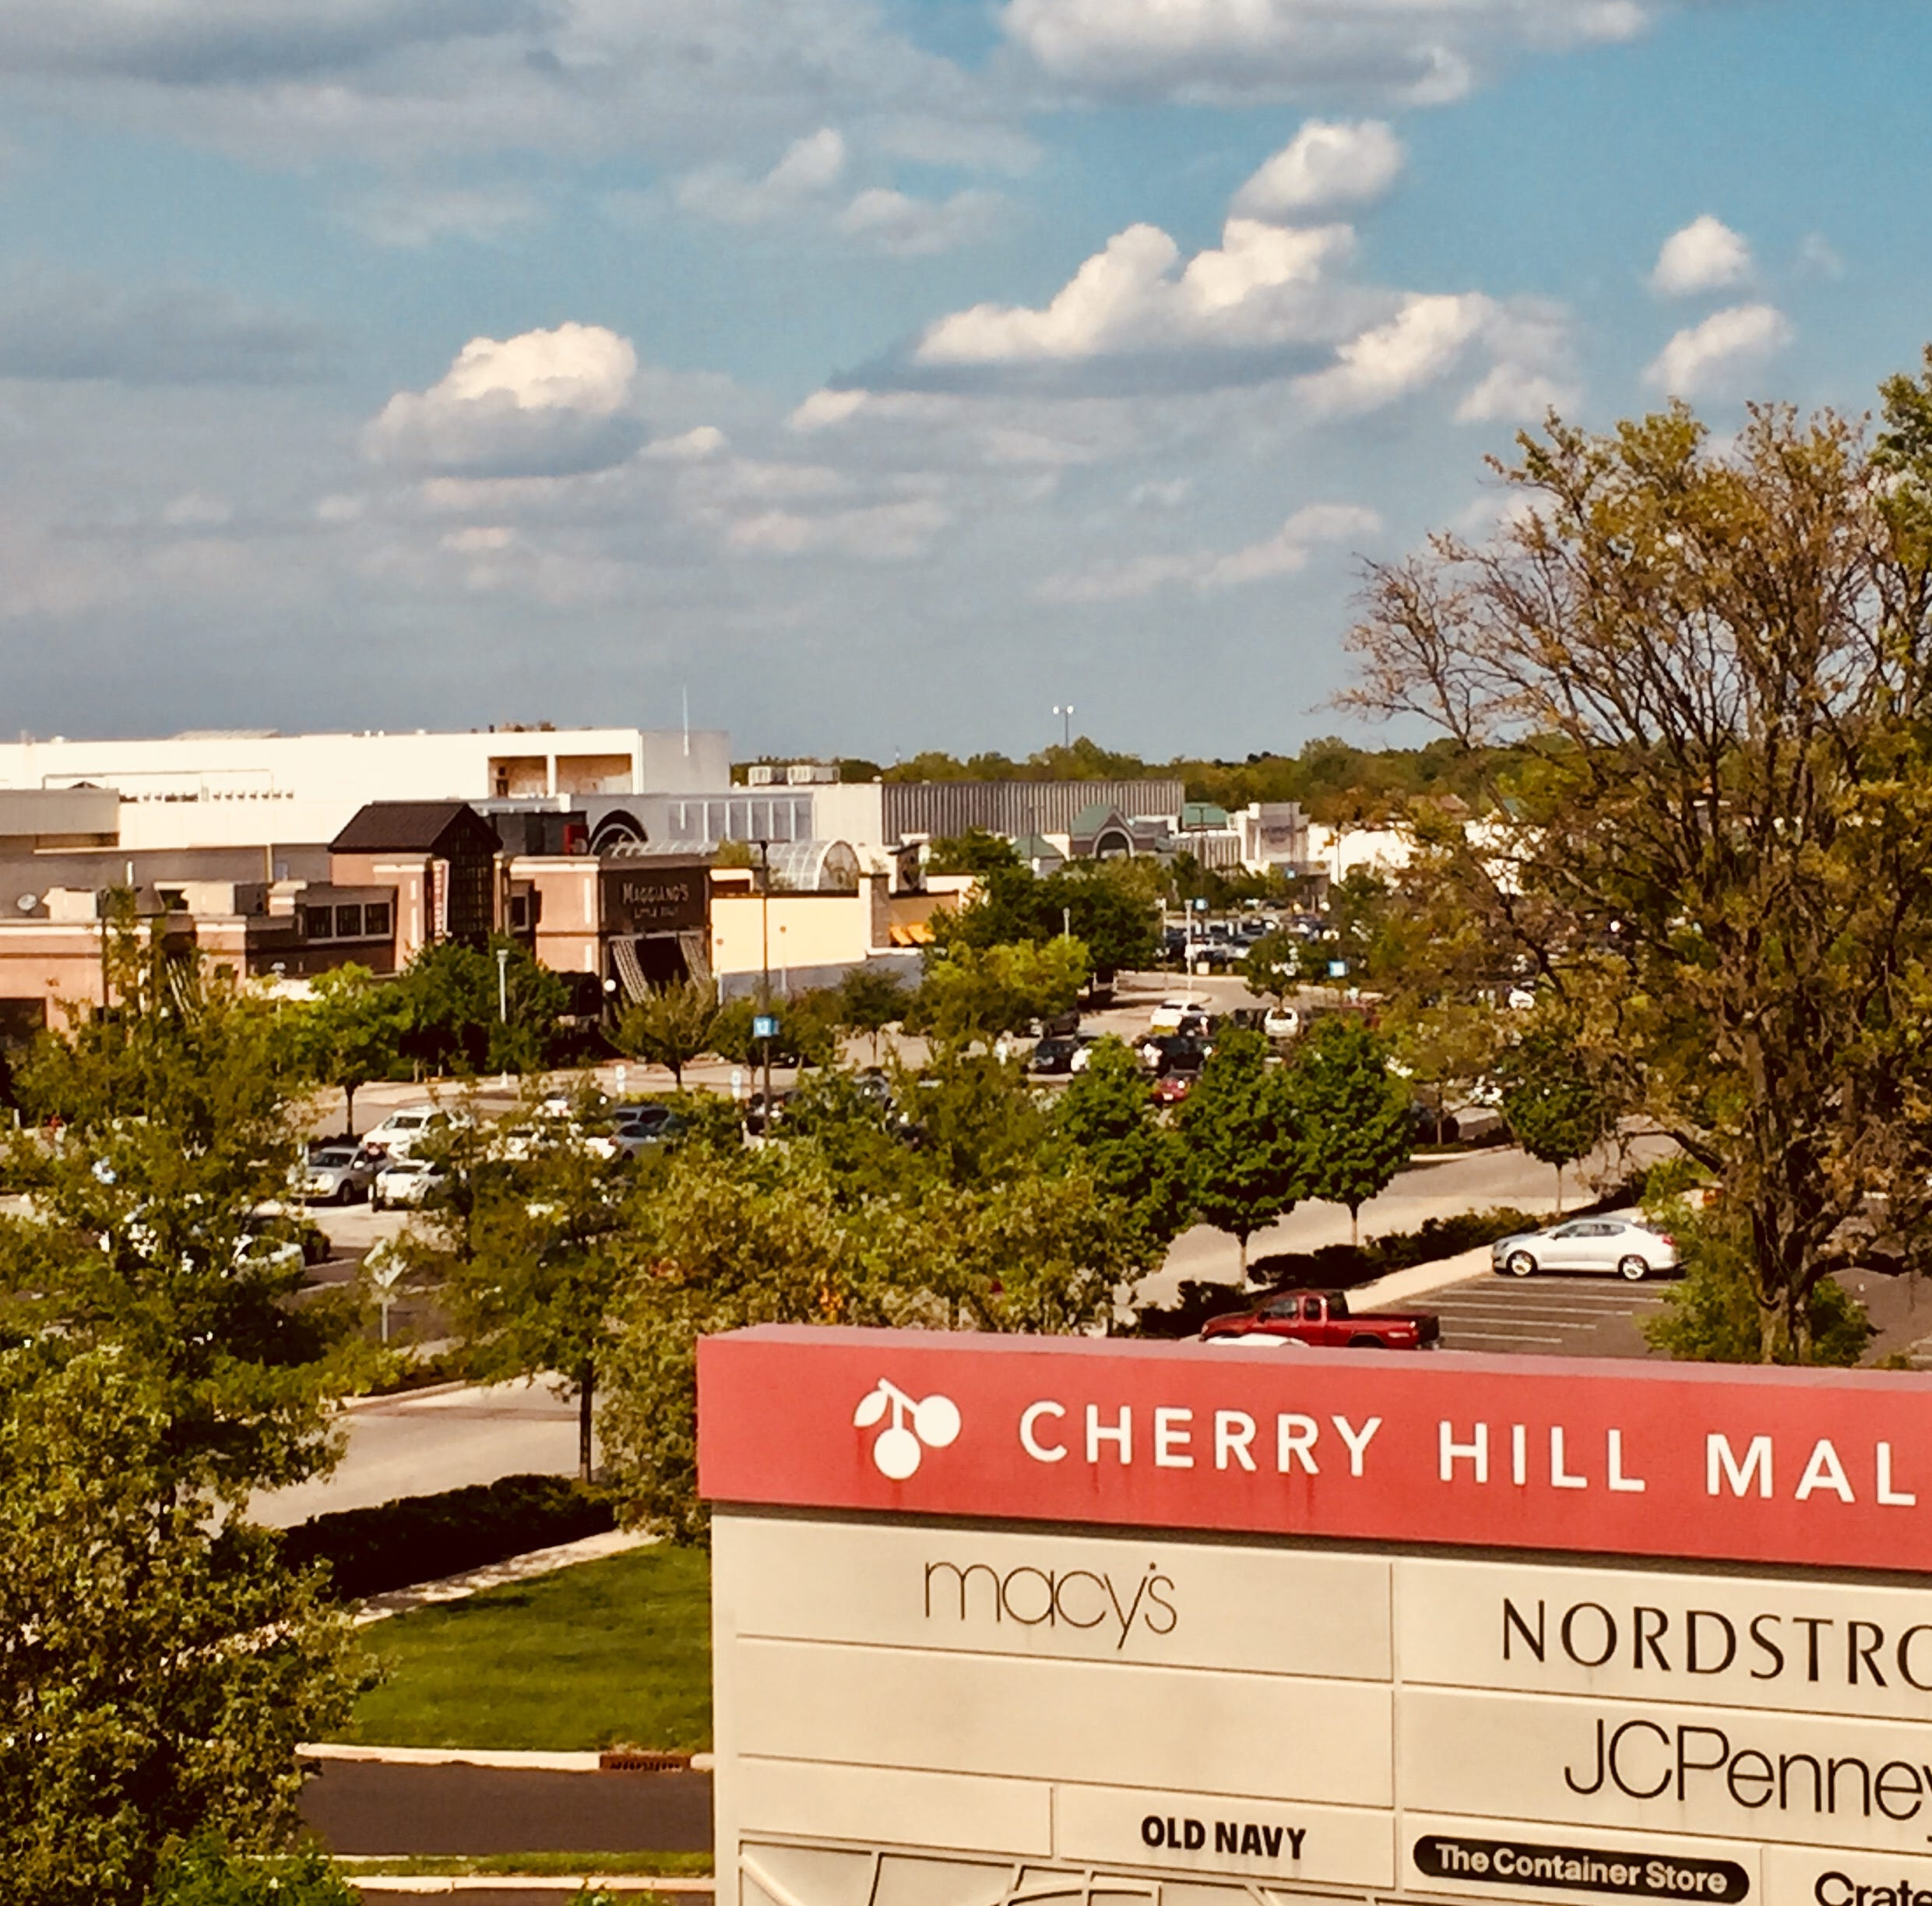 Artificial trees to sprout soon at Cherry Hill Mall store